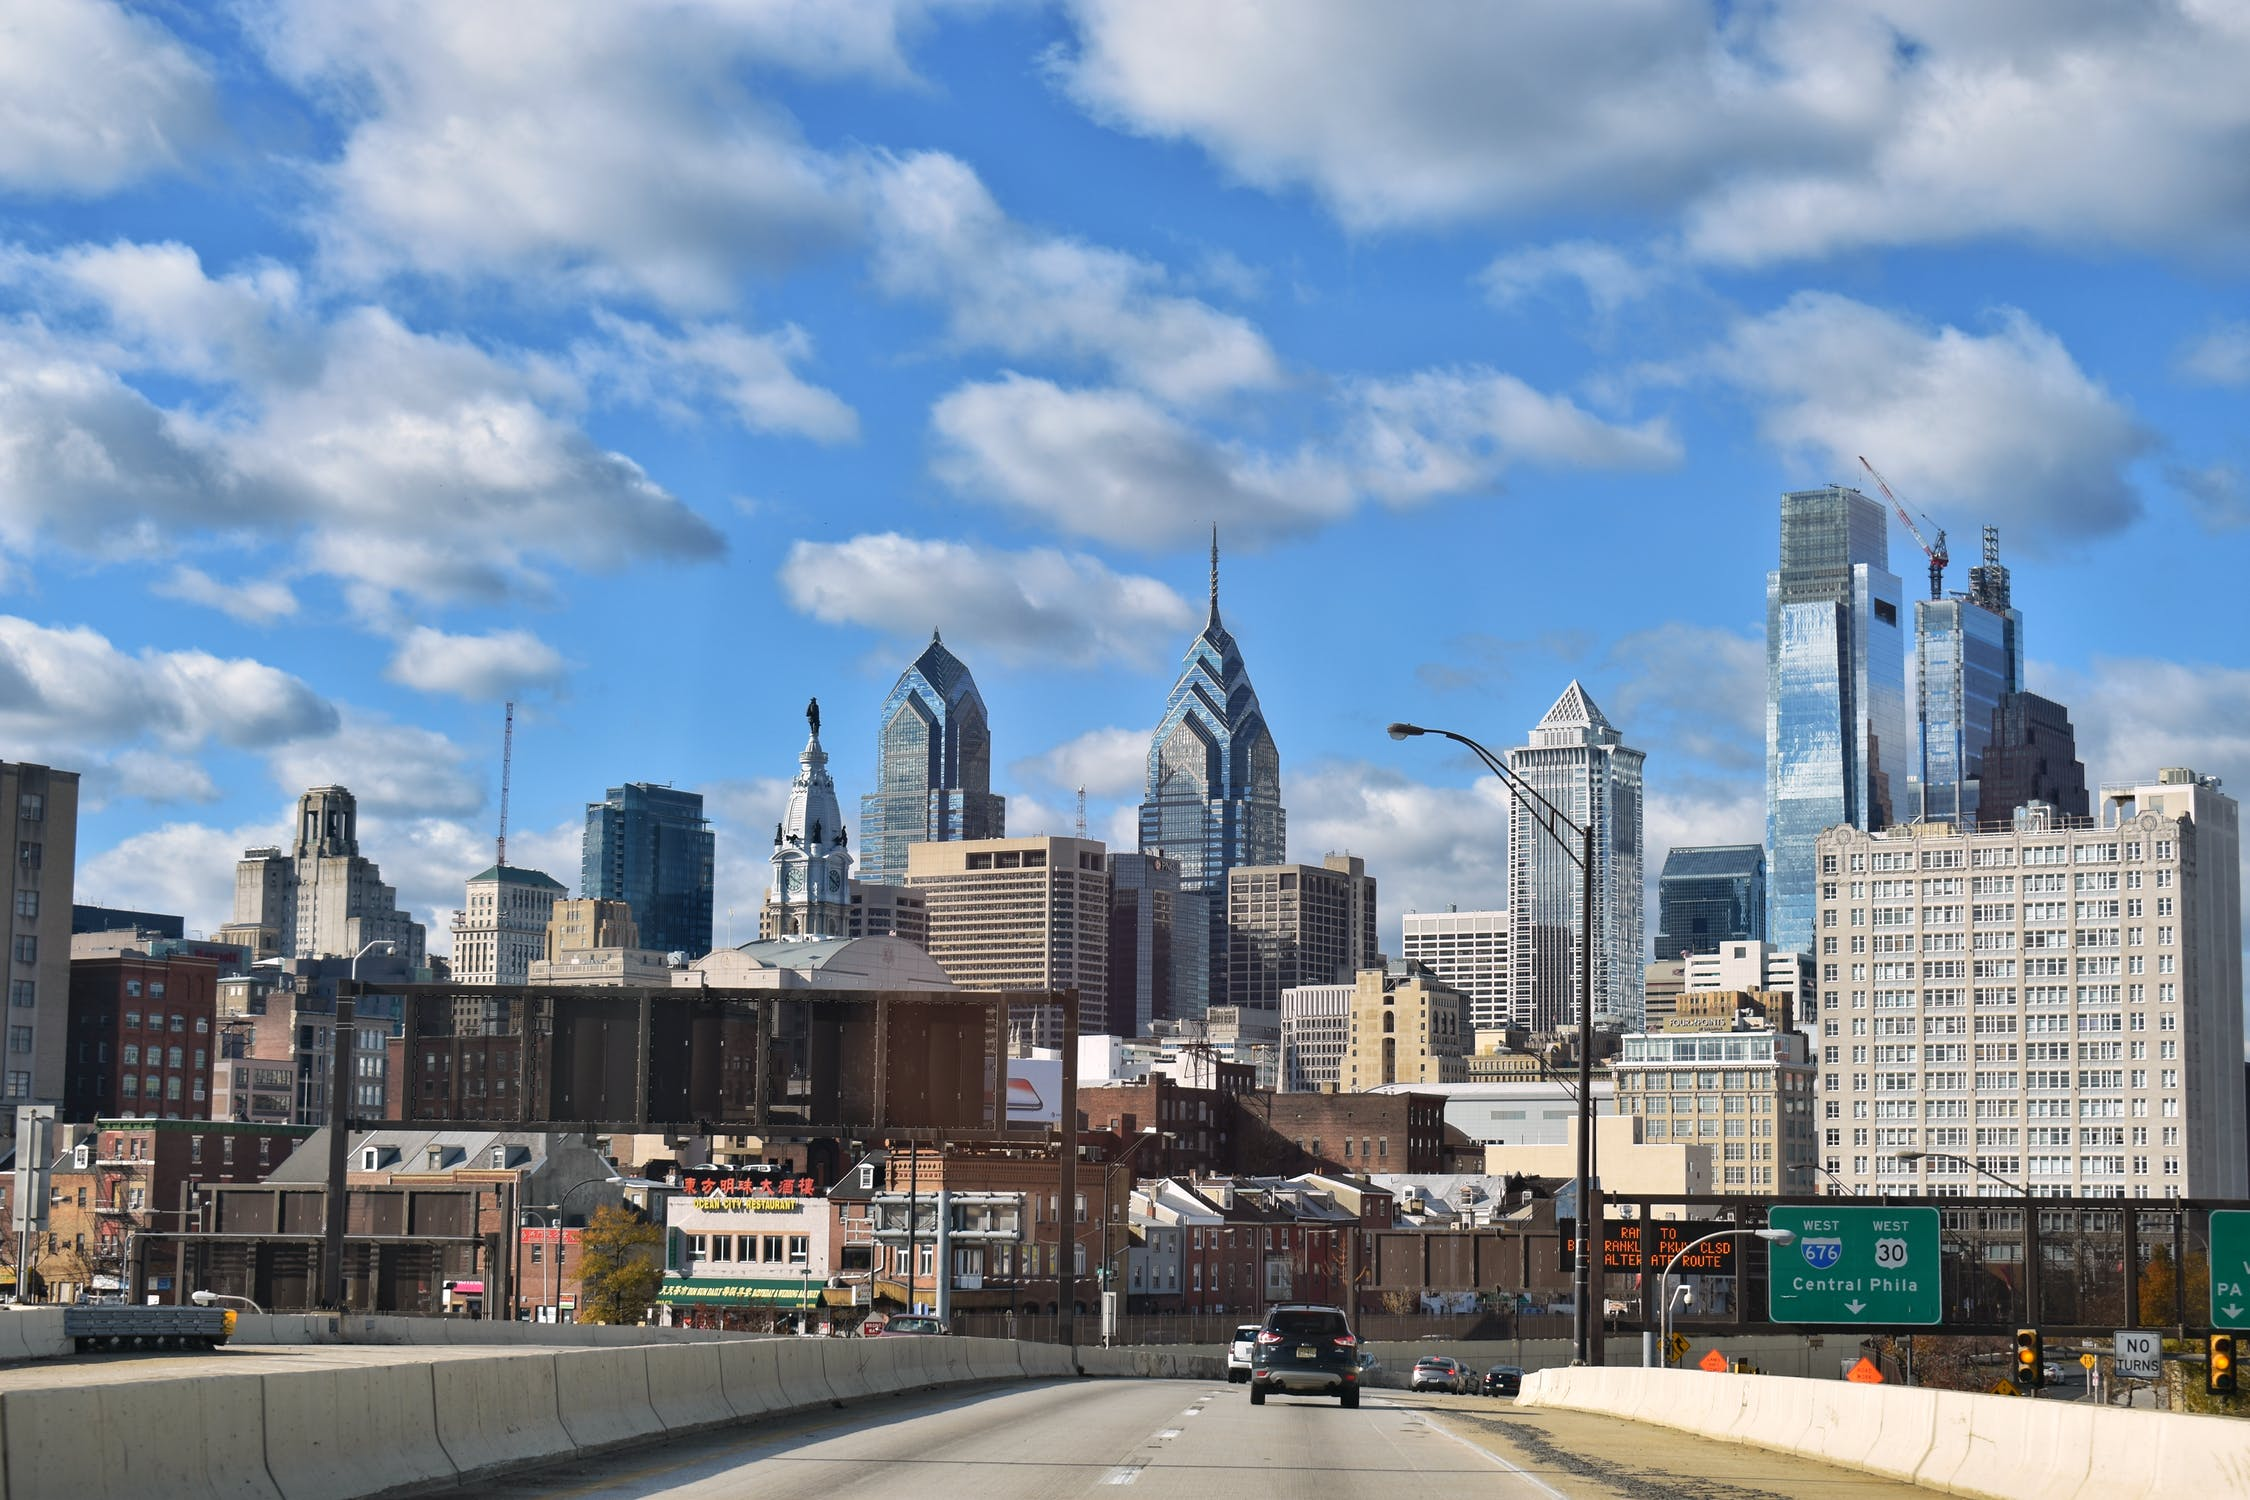 The Philadelphia Energy Solutions refinery has fueled the Mid-Atlantic since 1866